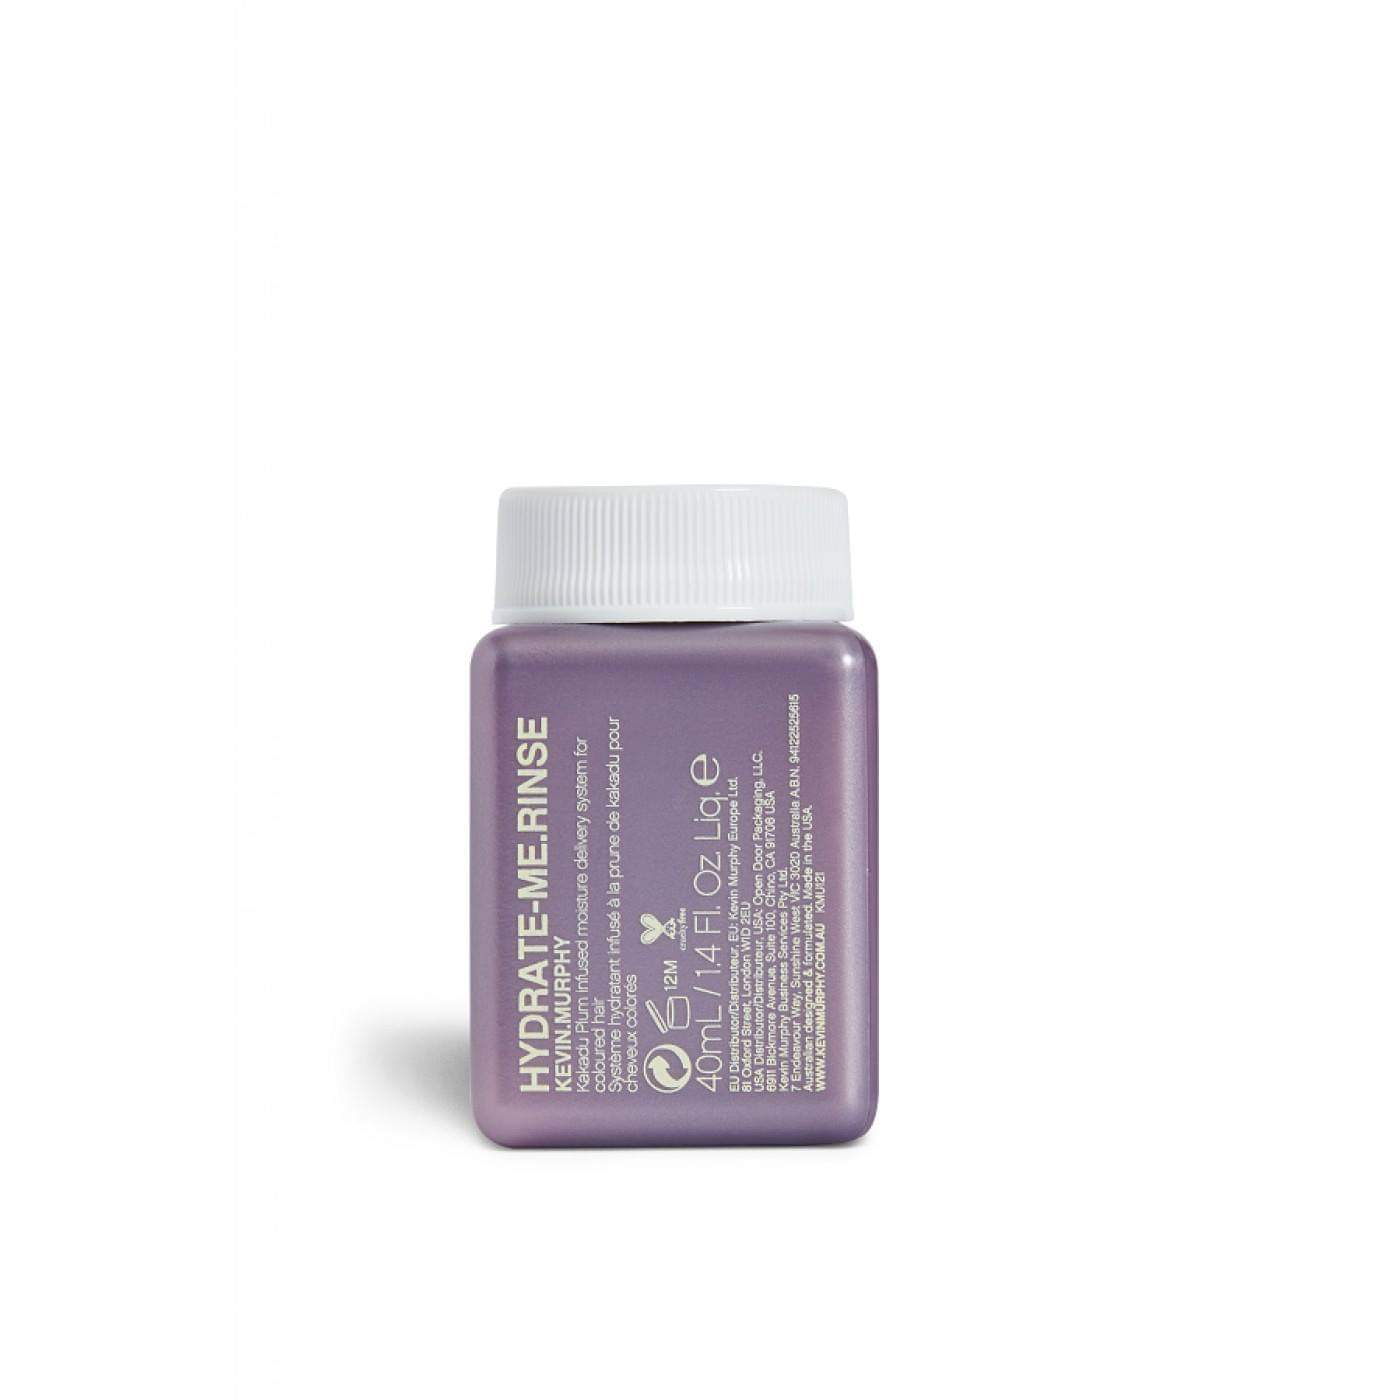 Kevin Murphy Hydrate - Me Rinse 40ml